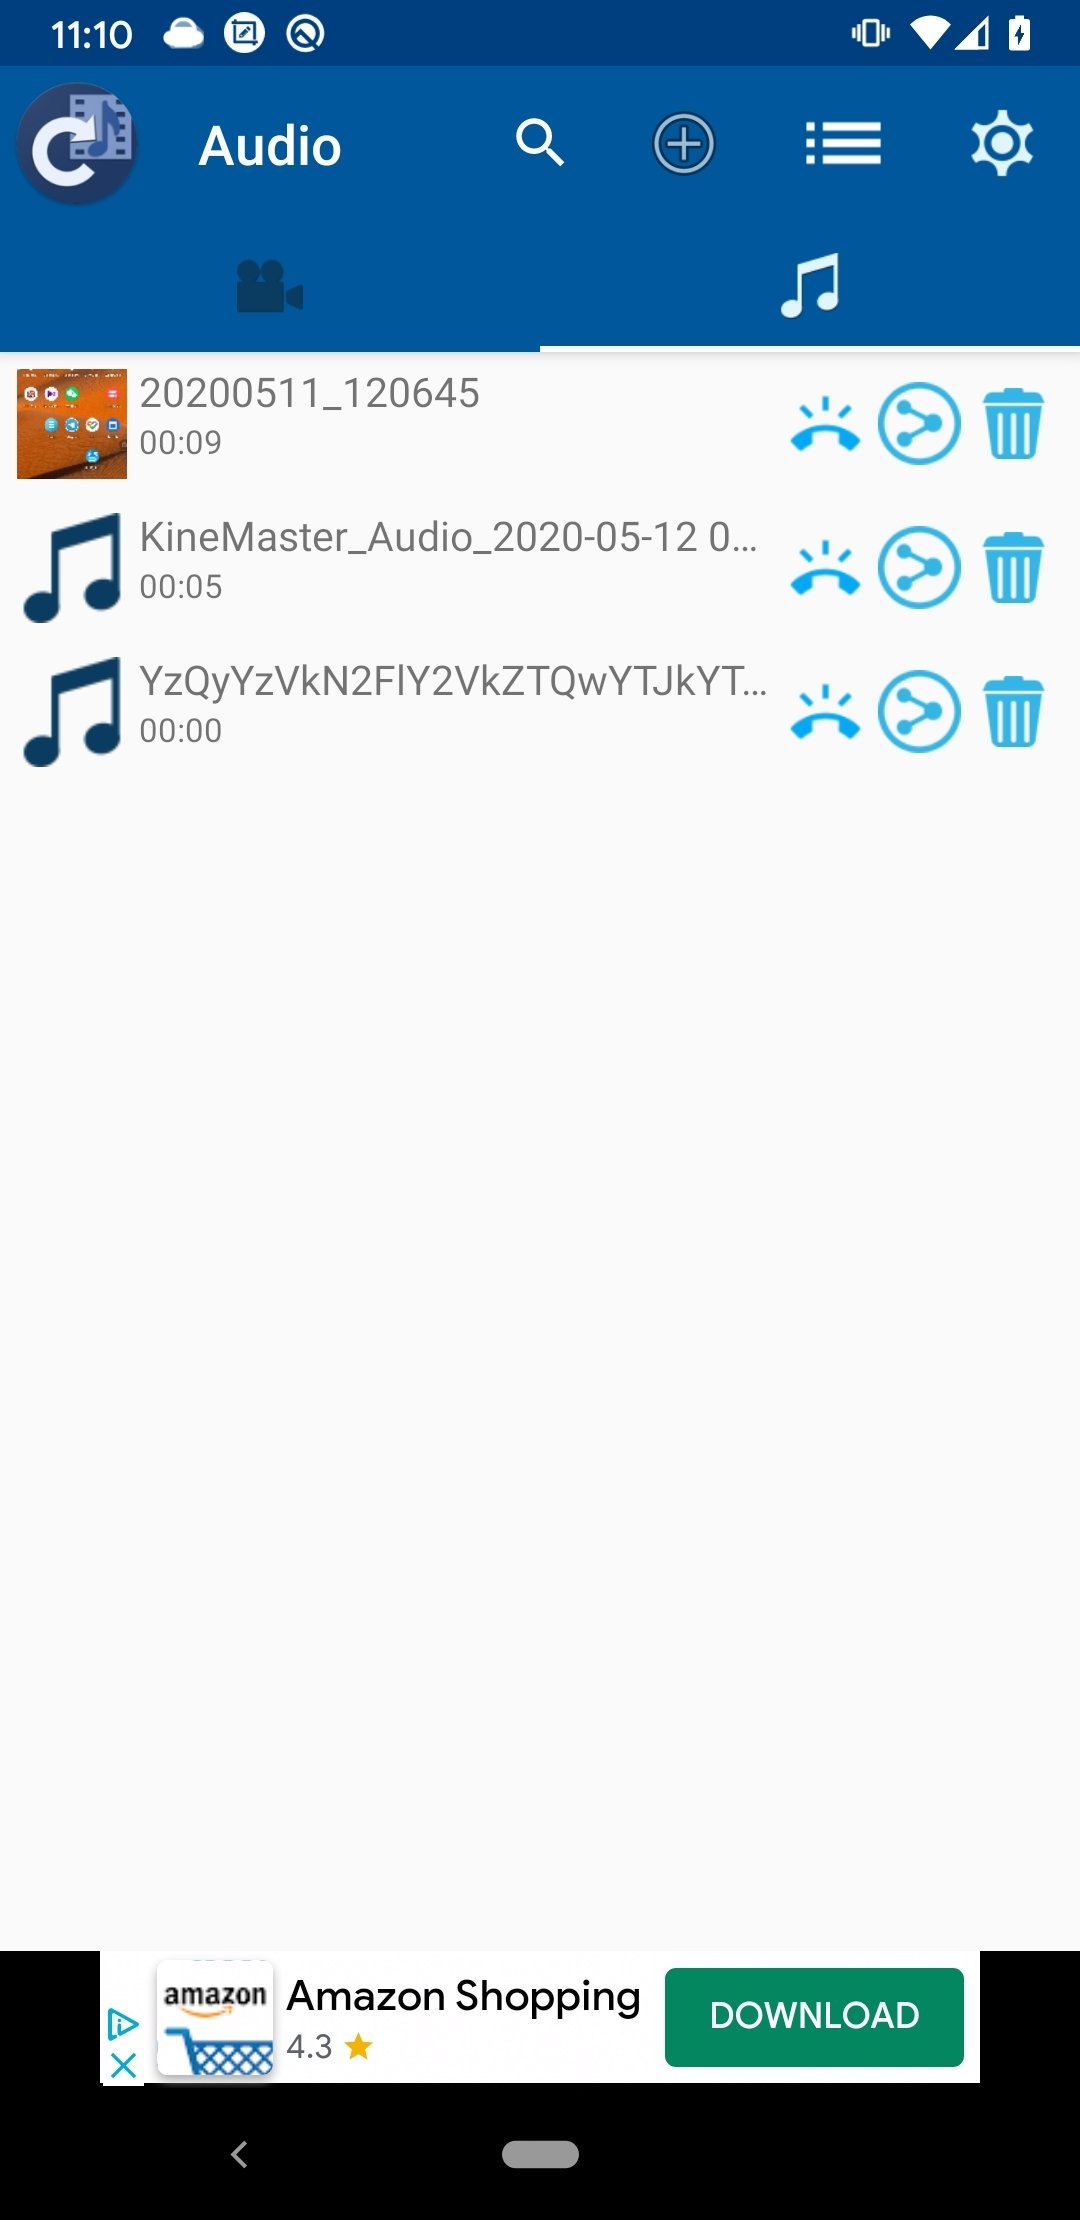 MP3 Video Converter Fundevs 2 4 1 - Download for Android APK Free